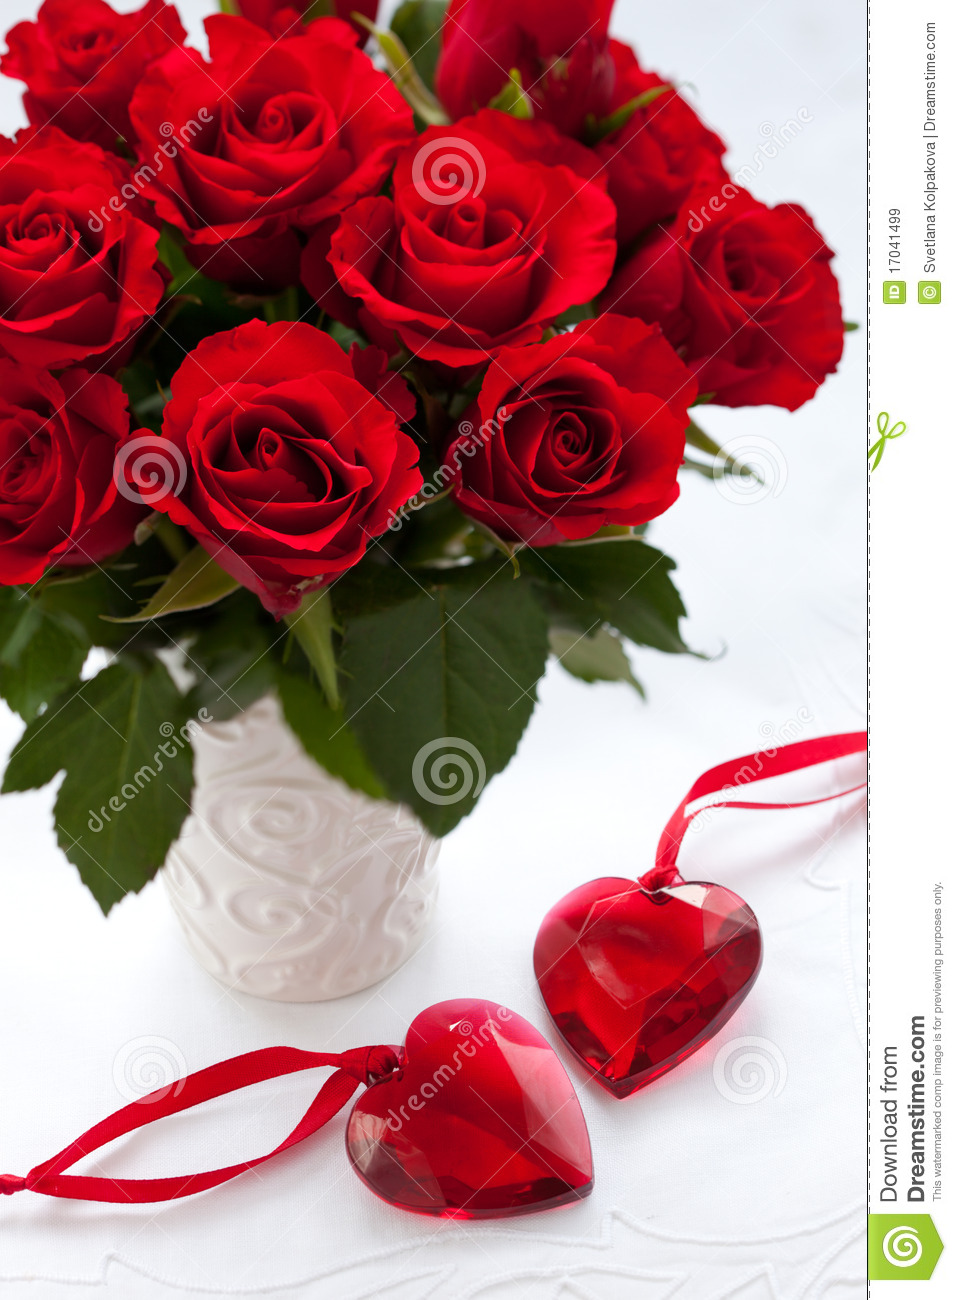 Red roses and hearts stock image image of bunch bloom - Pics of roses and hearts ...